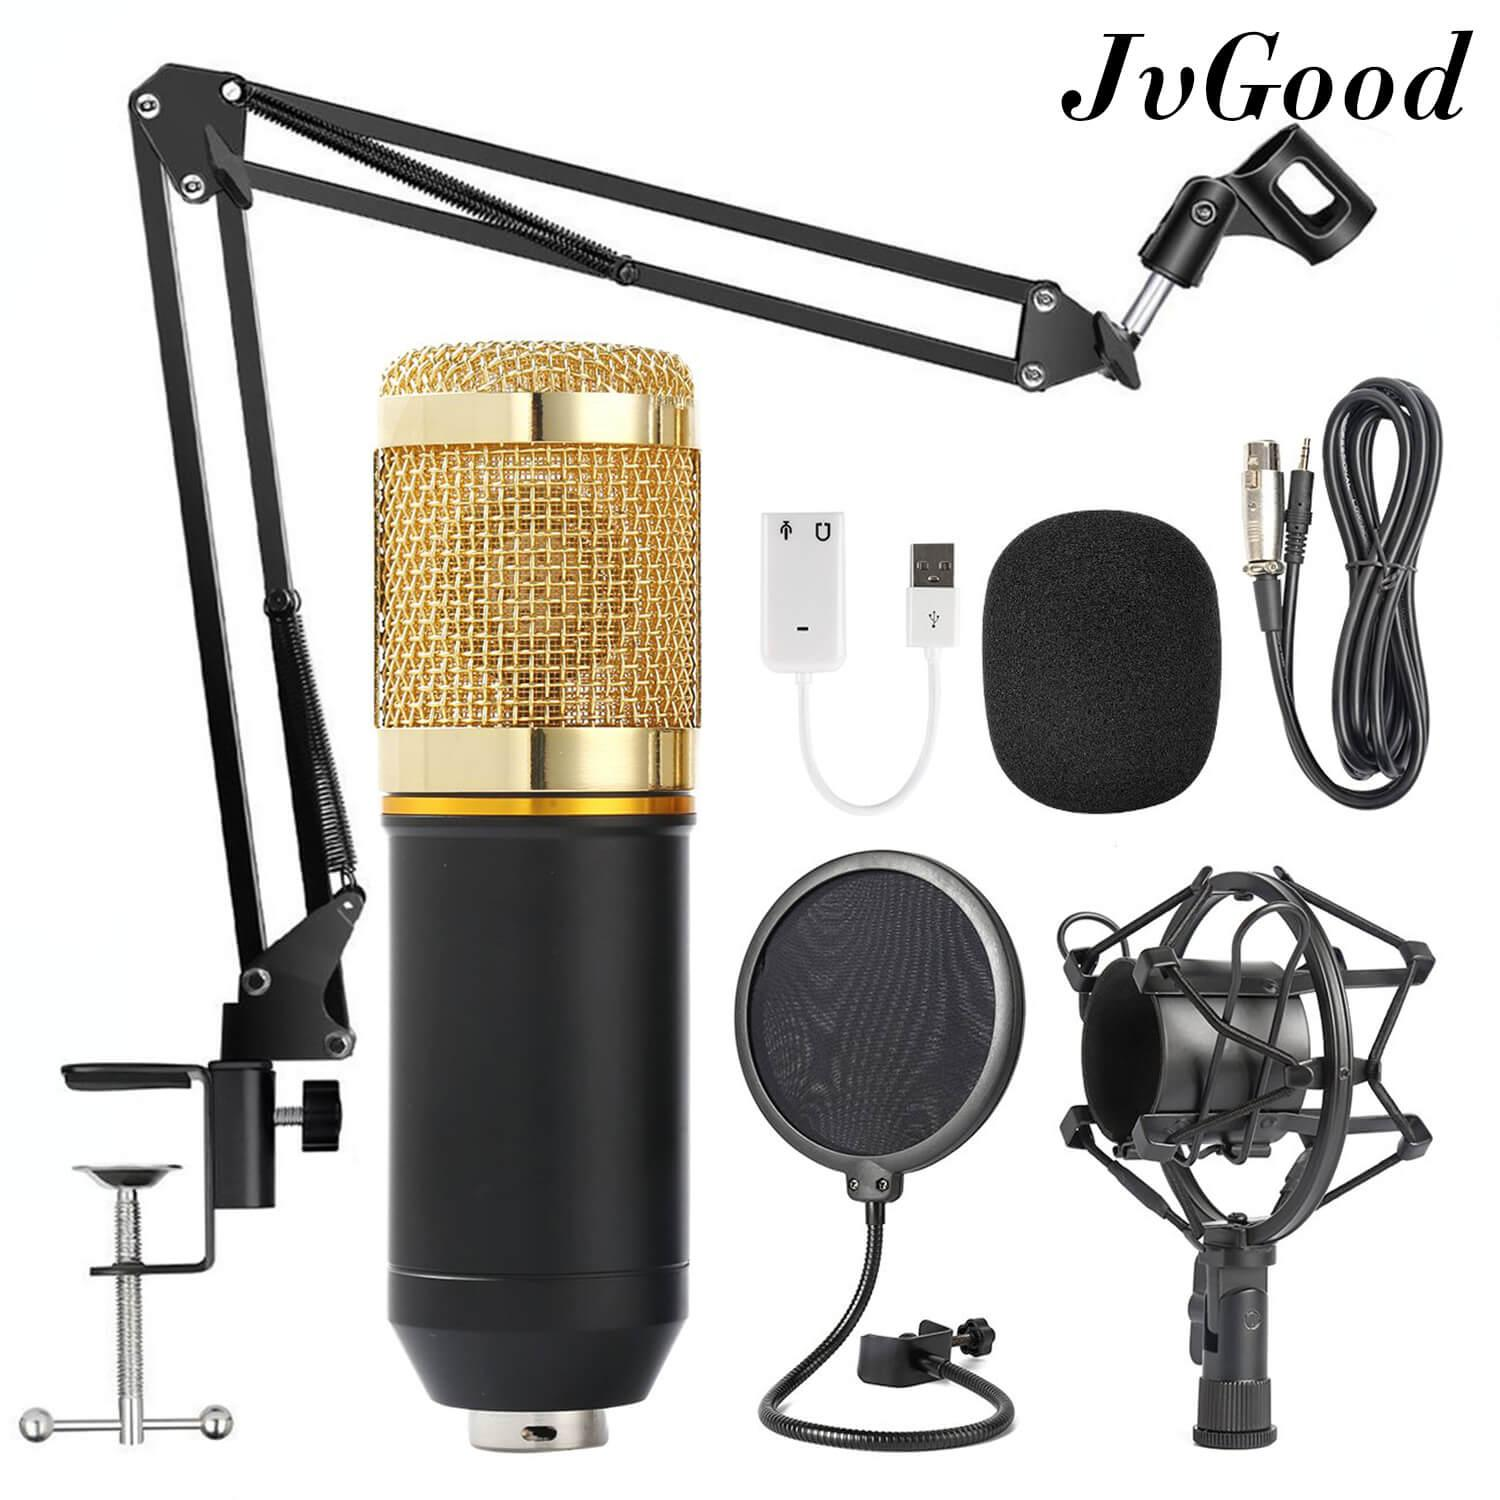 JvGood Condenser Microphone Stand Broadcasting & Recording Microphone Set Stand with Adjustable Mic Suspension Scissor Arm